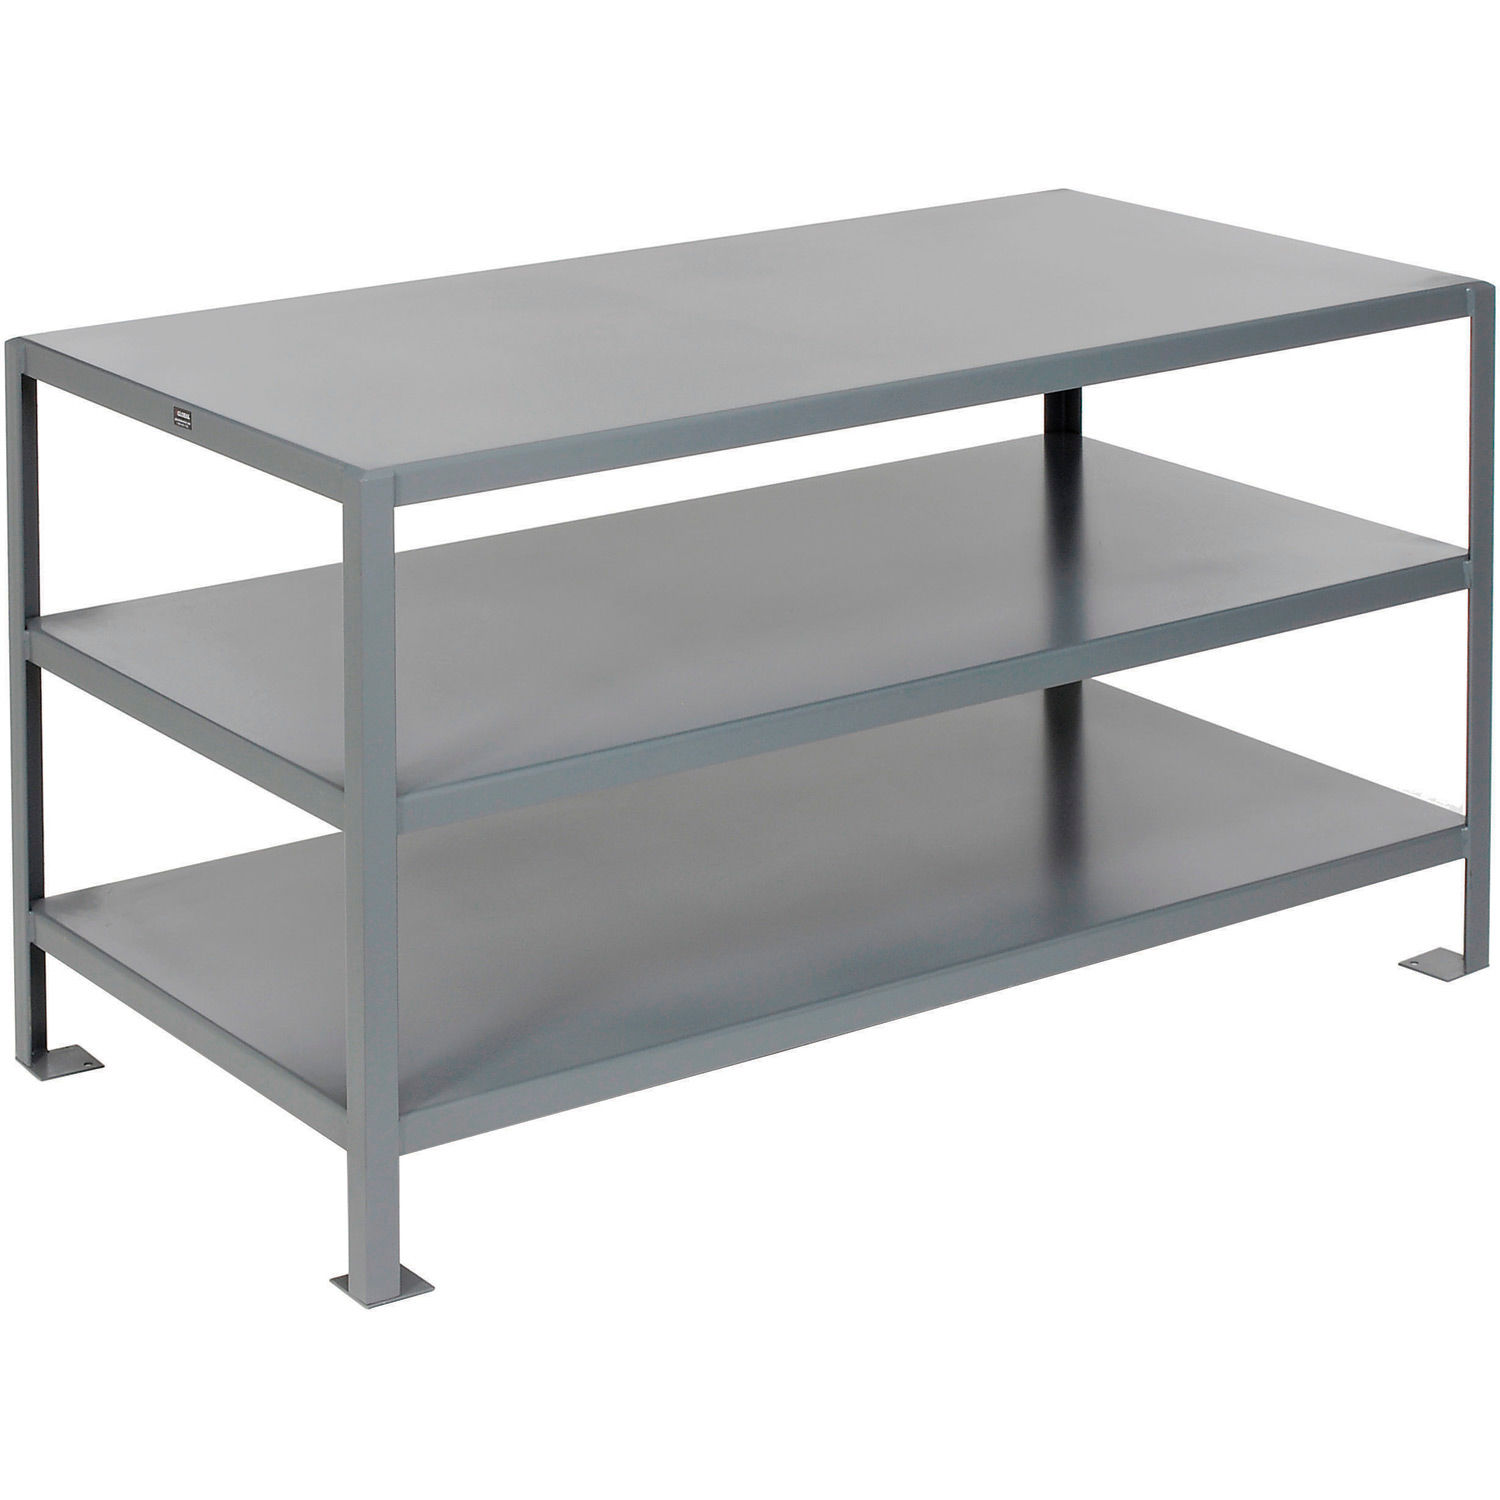 Coffee Table 36 X 24.Machine Tables Shop Stands Machine Tables 36 X 24 3 Shelf